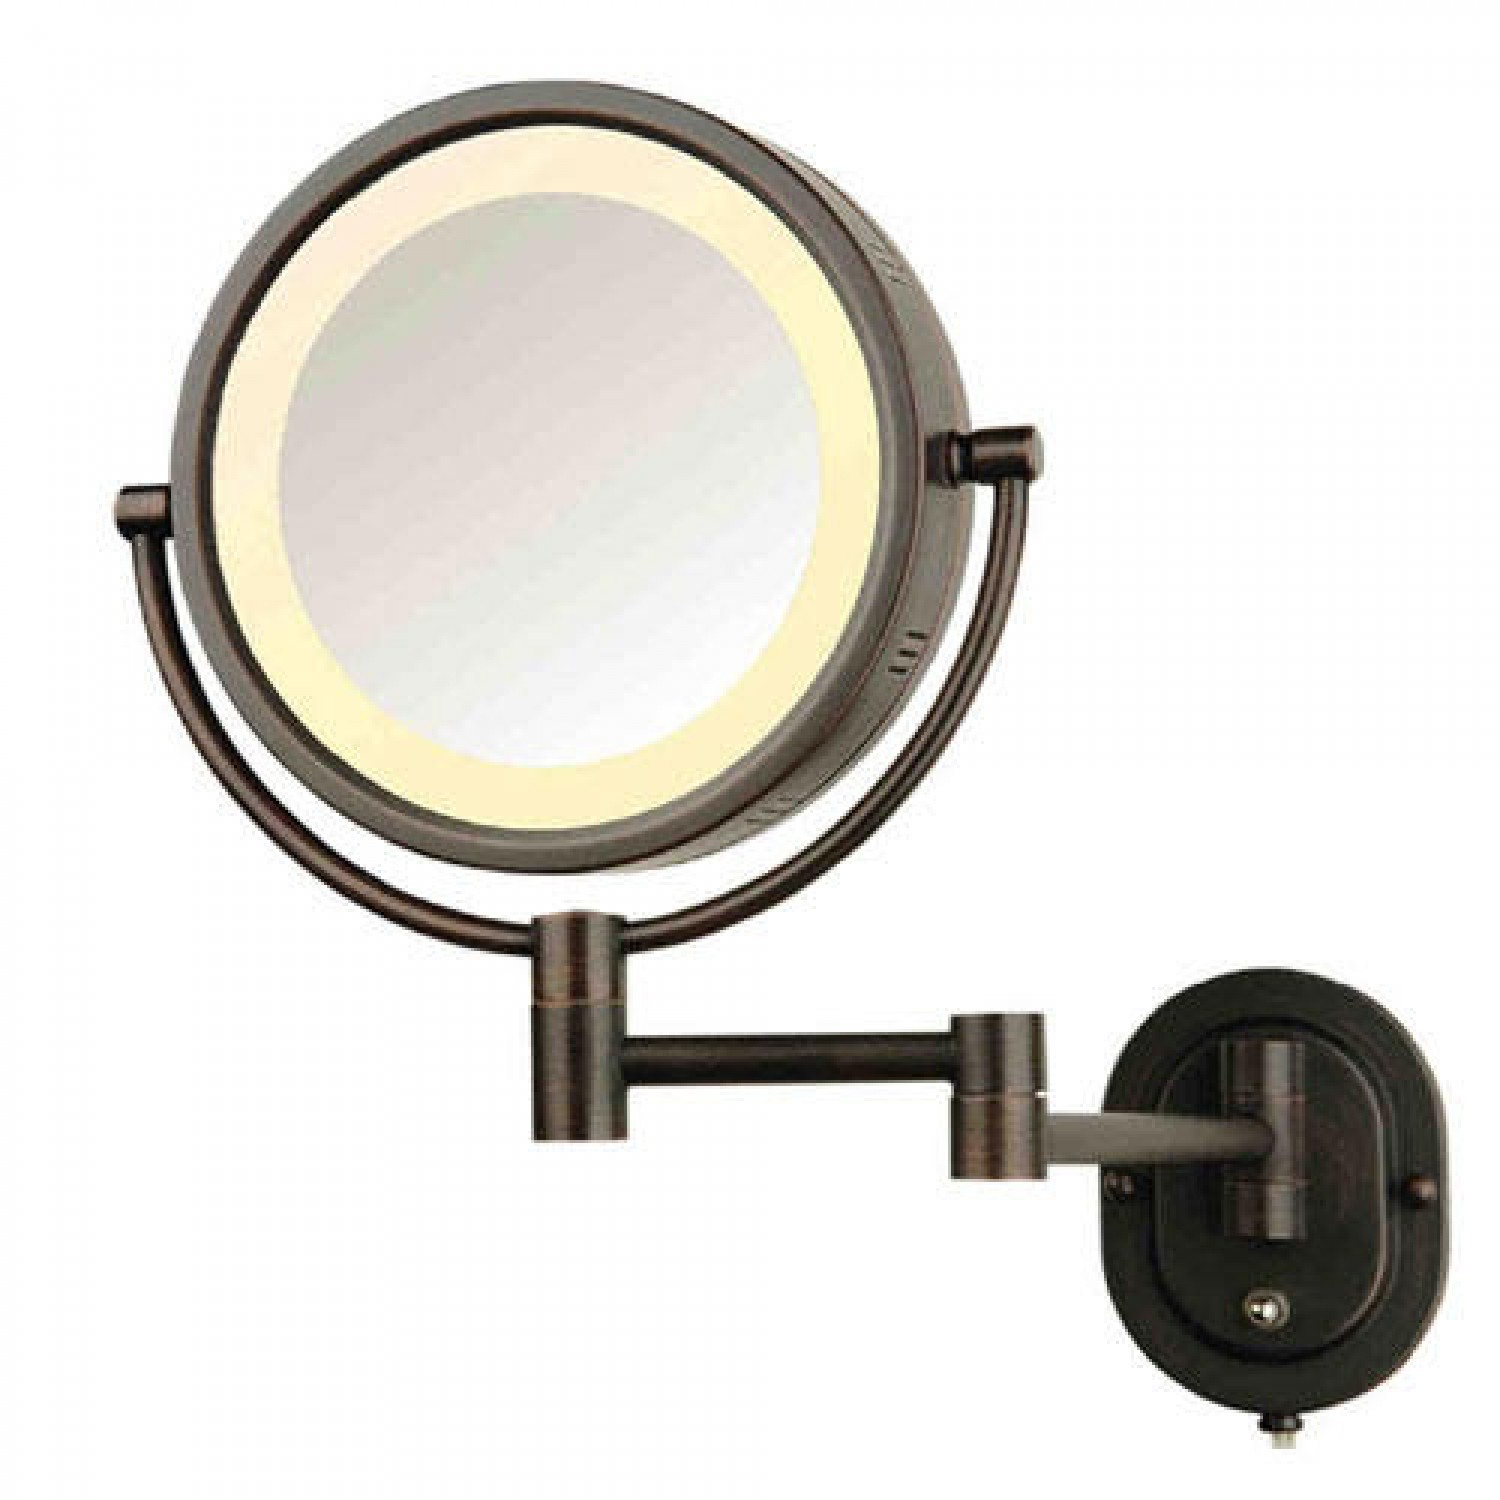 Makeup Vanity with Lighted Mirror | Best Lighted Makeup Mirror | Lighted Vanity Mirror